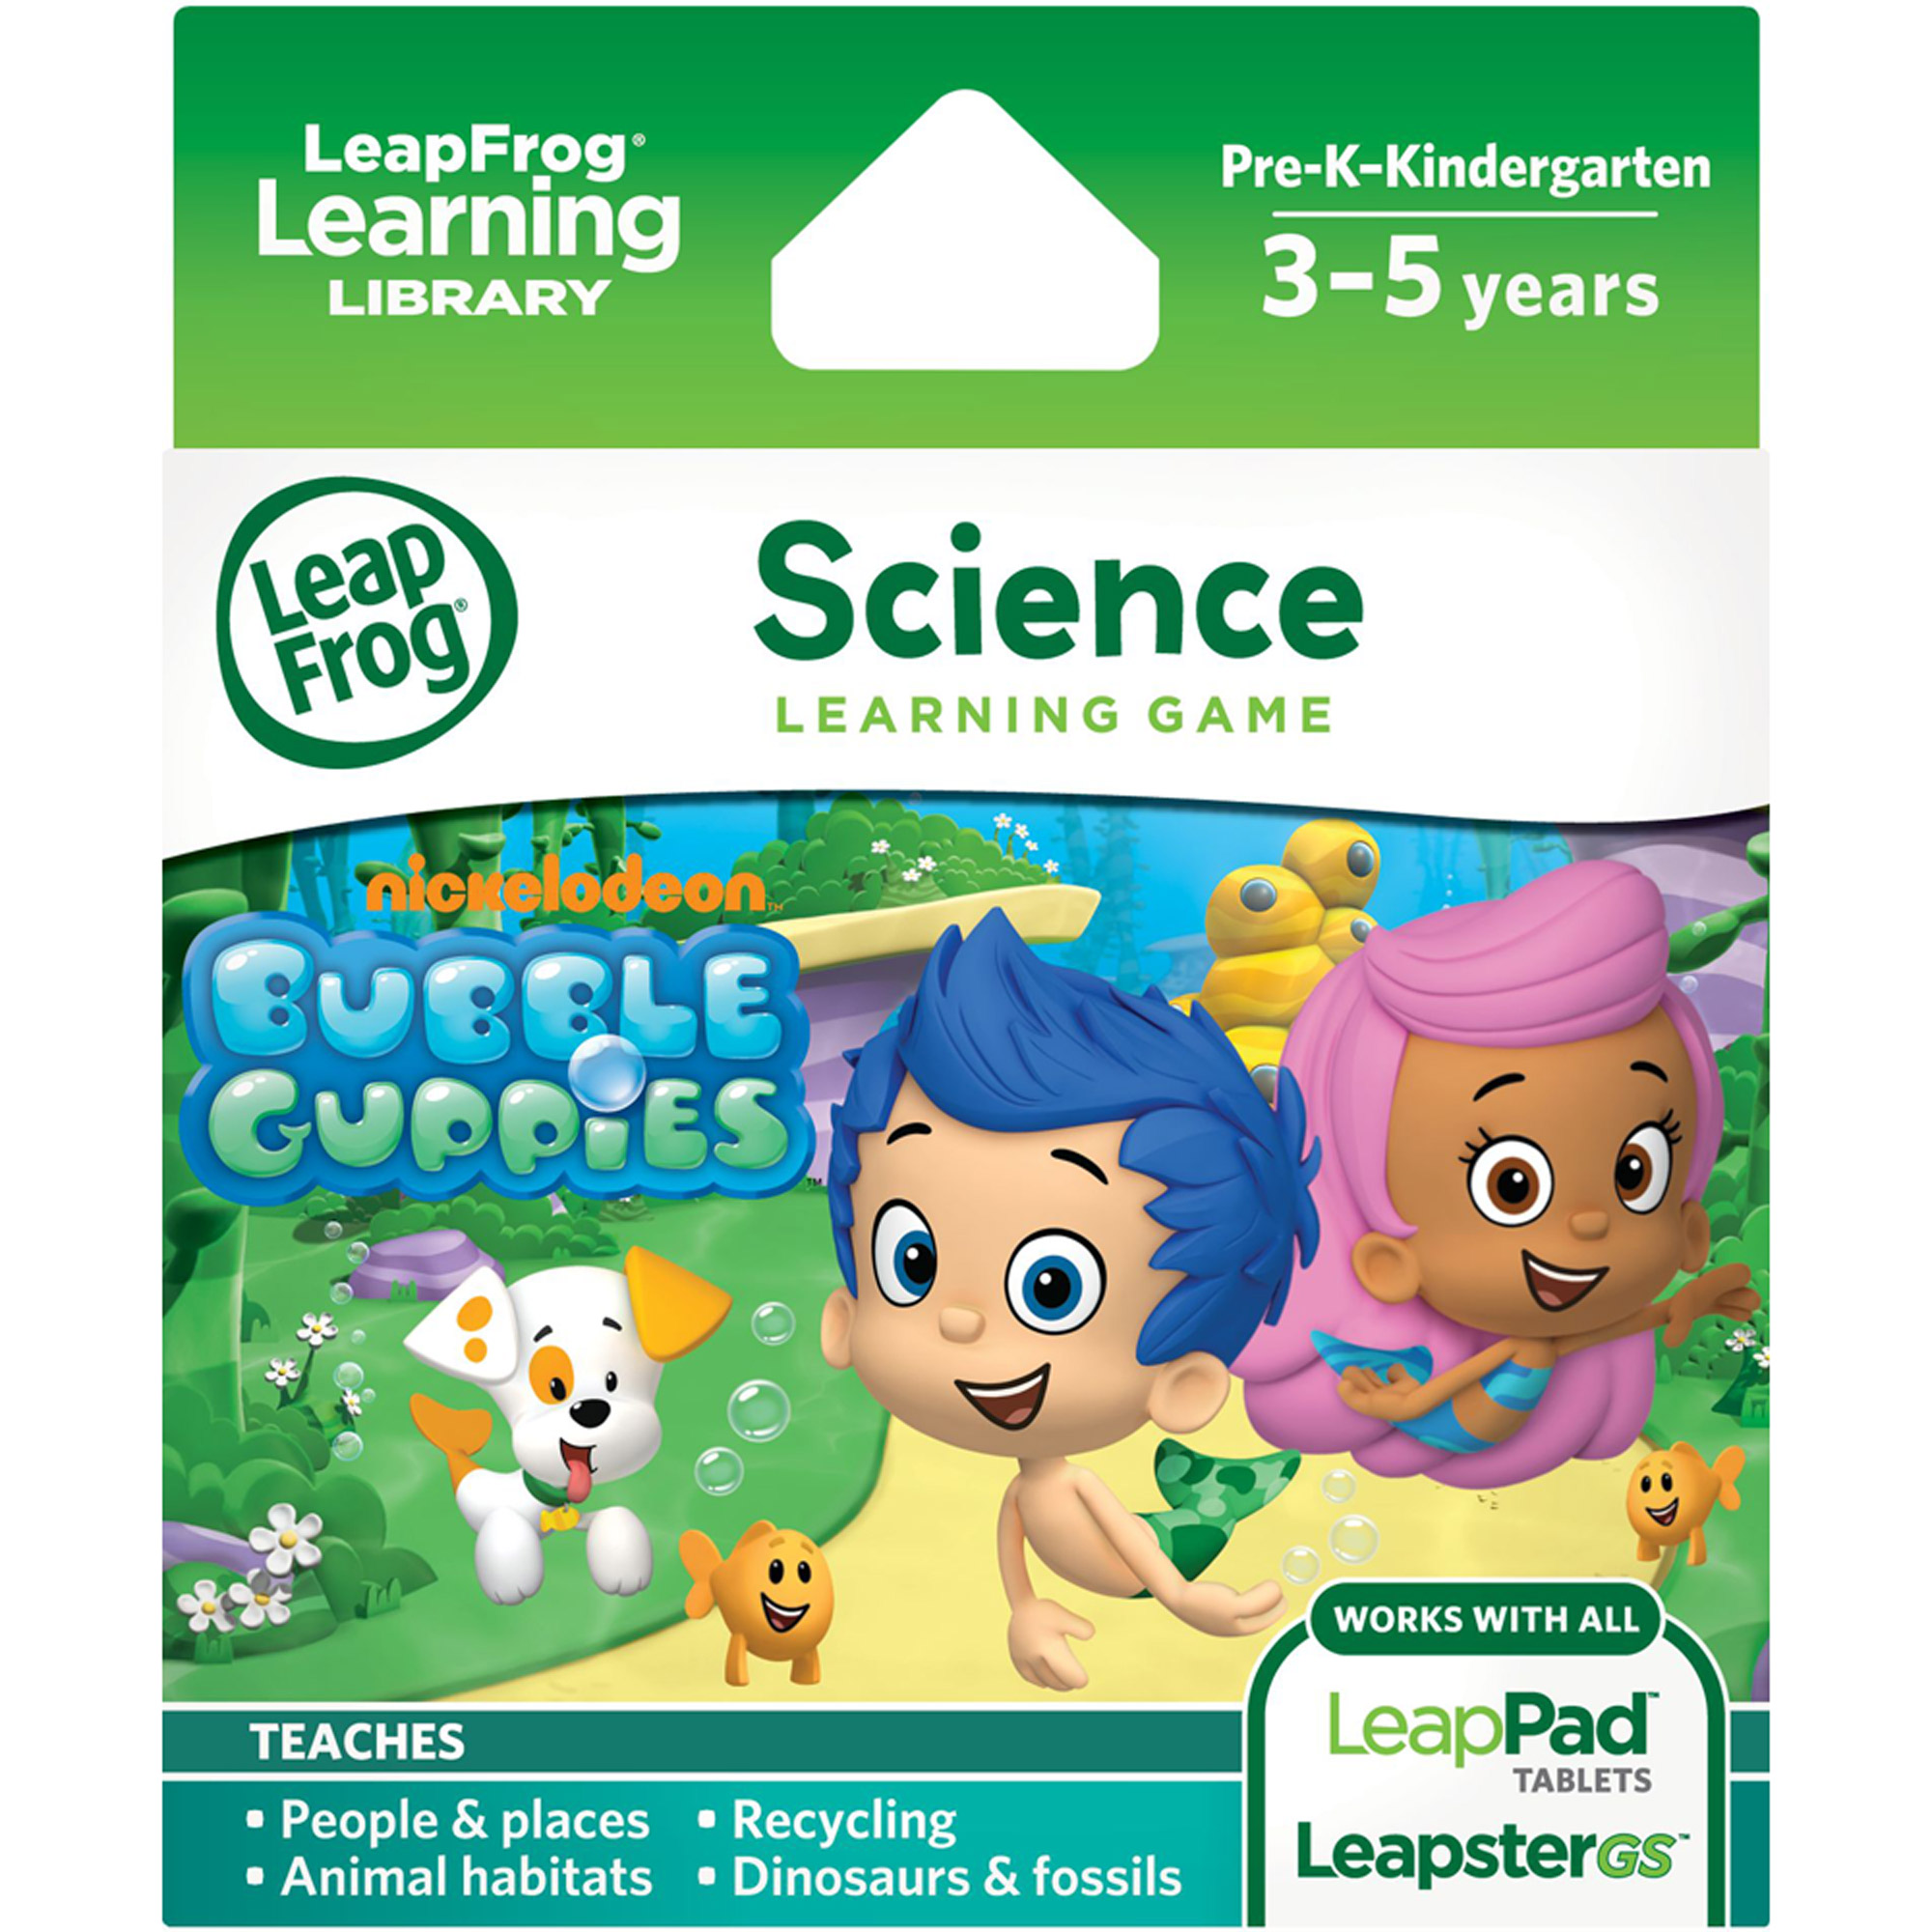 LeapFrog Leapster Explorer Learning Game, Nickelodeon Bubble Guppies